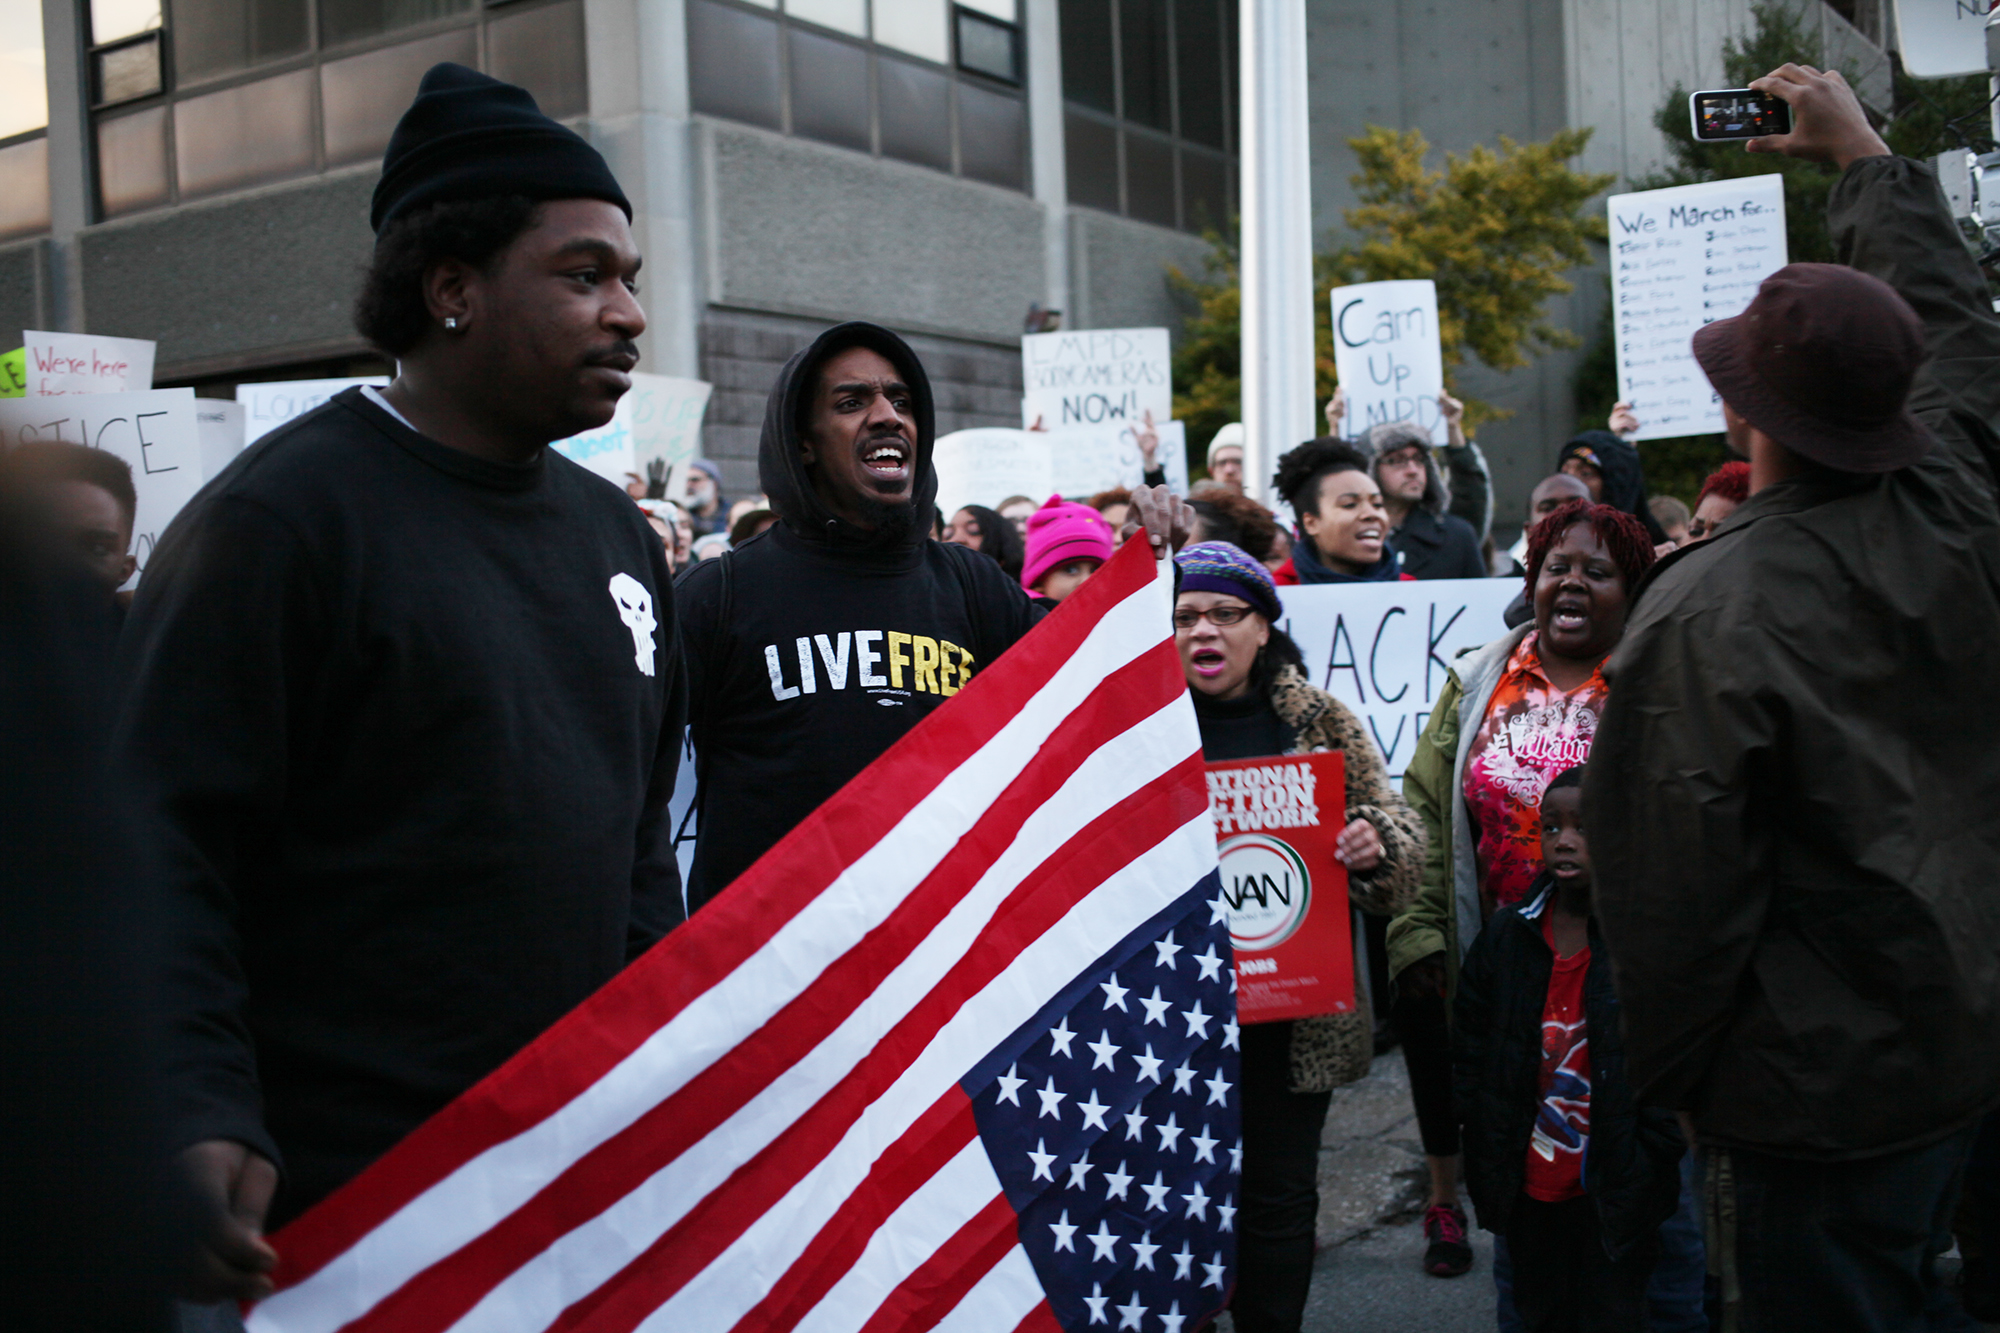 Community members gathered outside of Louisville Police Department headquarters to protest for more transparency in police actions after the death of Michael Brown, an unarmed man, in Ferguson. Mo. The protest took place the day after Officer Darren Wilson, who fatally shot Brown, was not indicted.